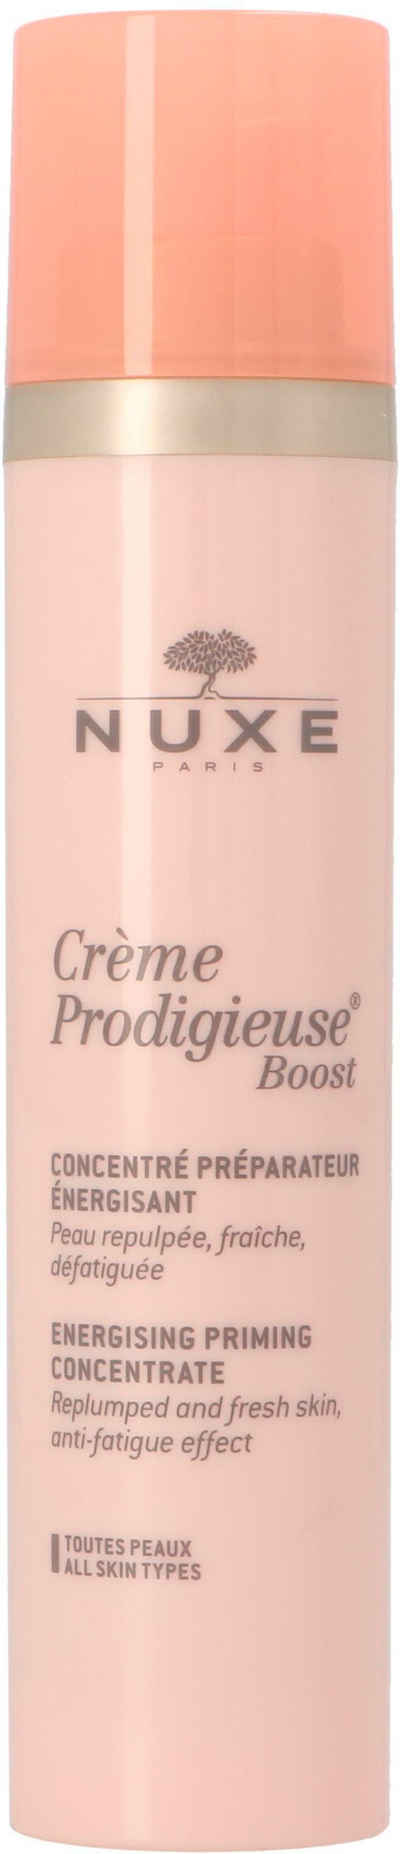 Nuxe Gesichtspflege »Crème Prodigieuse Boost Energizing Priming Concentrate«